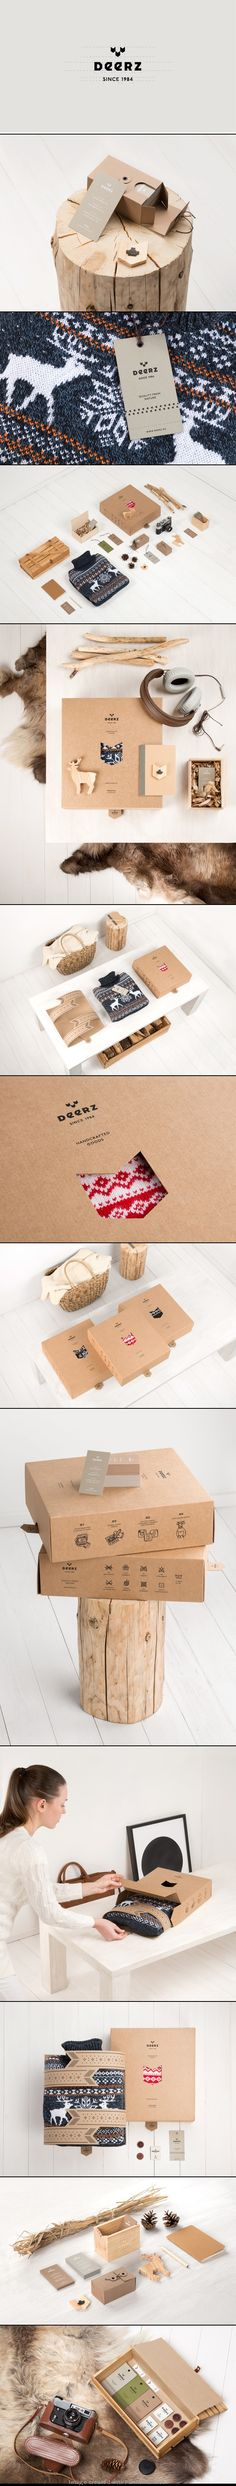 Here you go @Jenn L Yoder Mihailova Deerz awesome #identity #packaging #branding curated by Packaging.